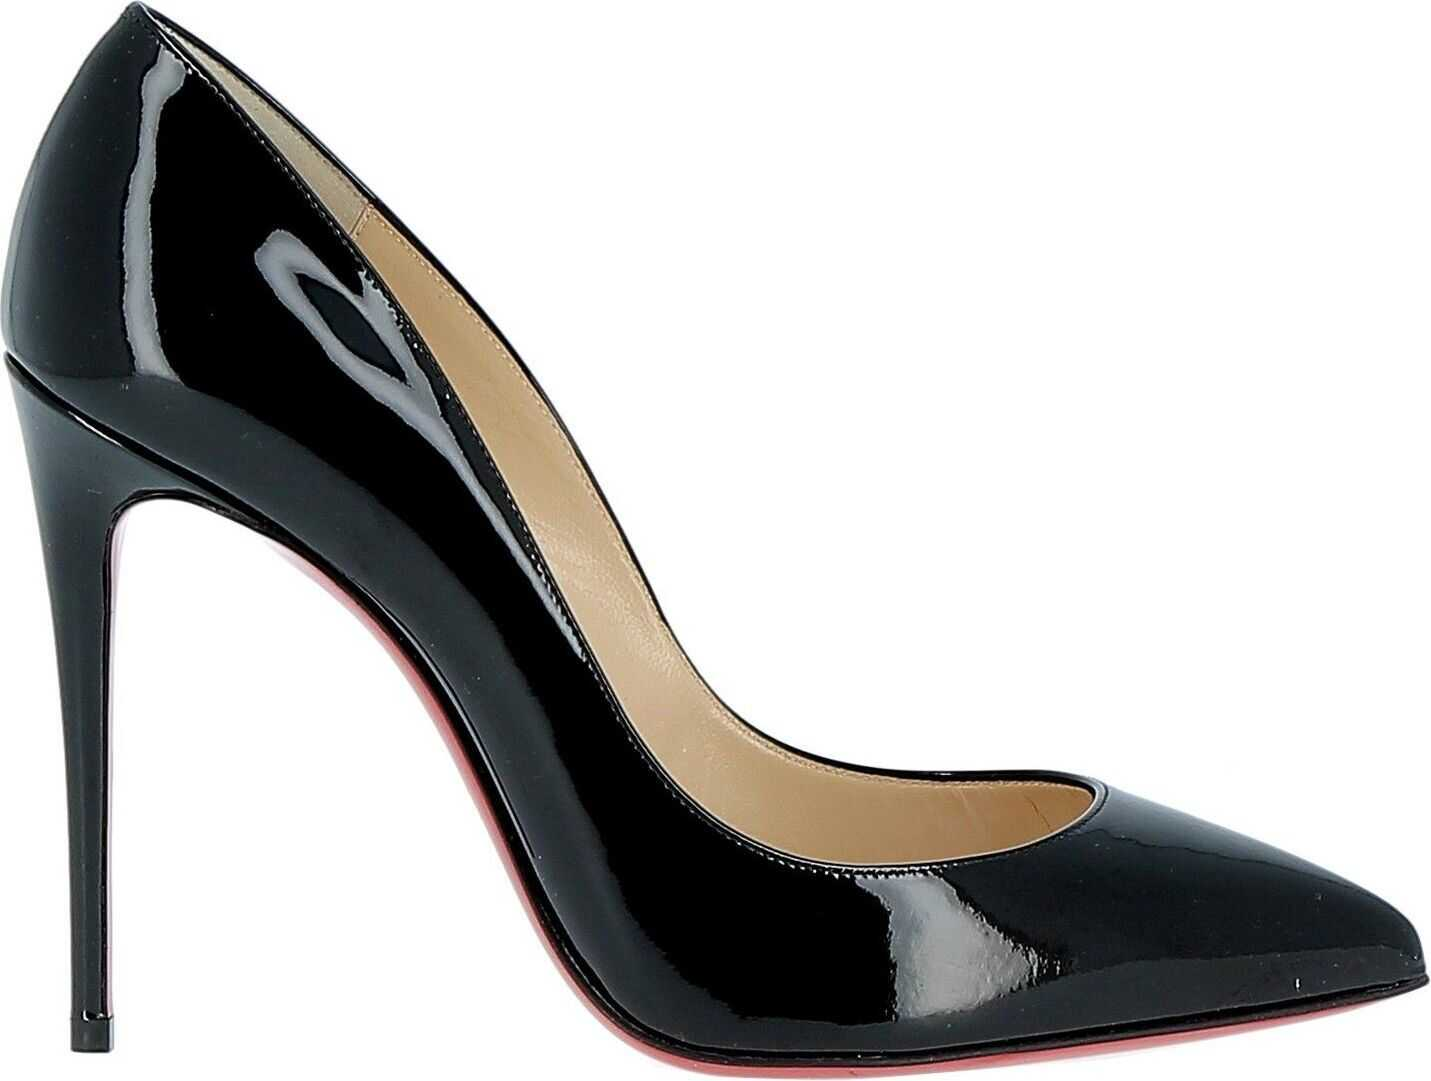 Christian Louboutin Patent Leather Pumps BLACK